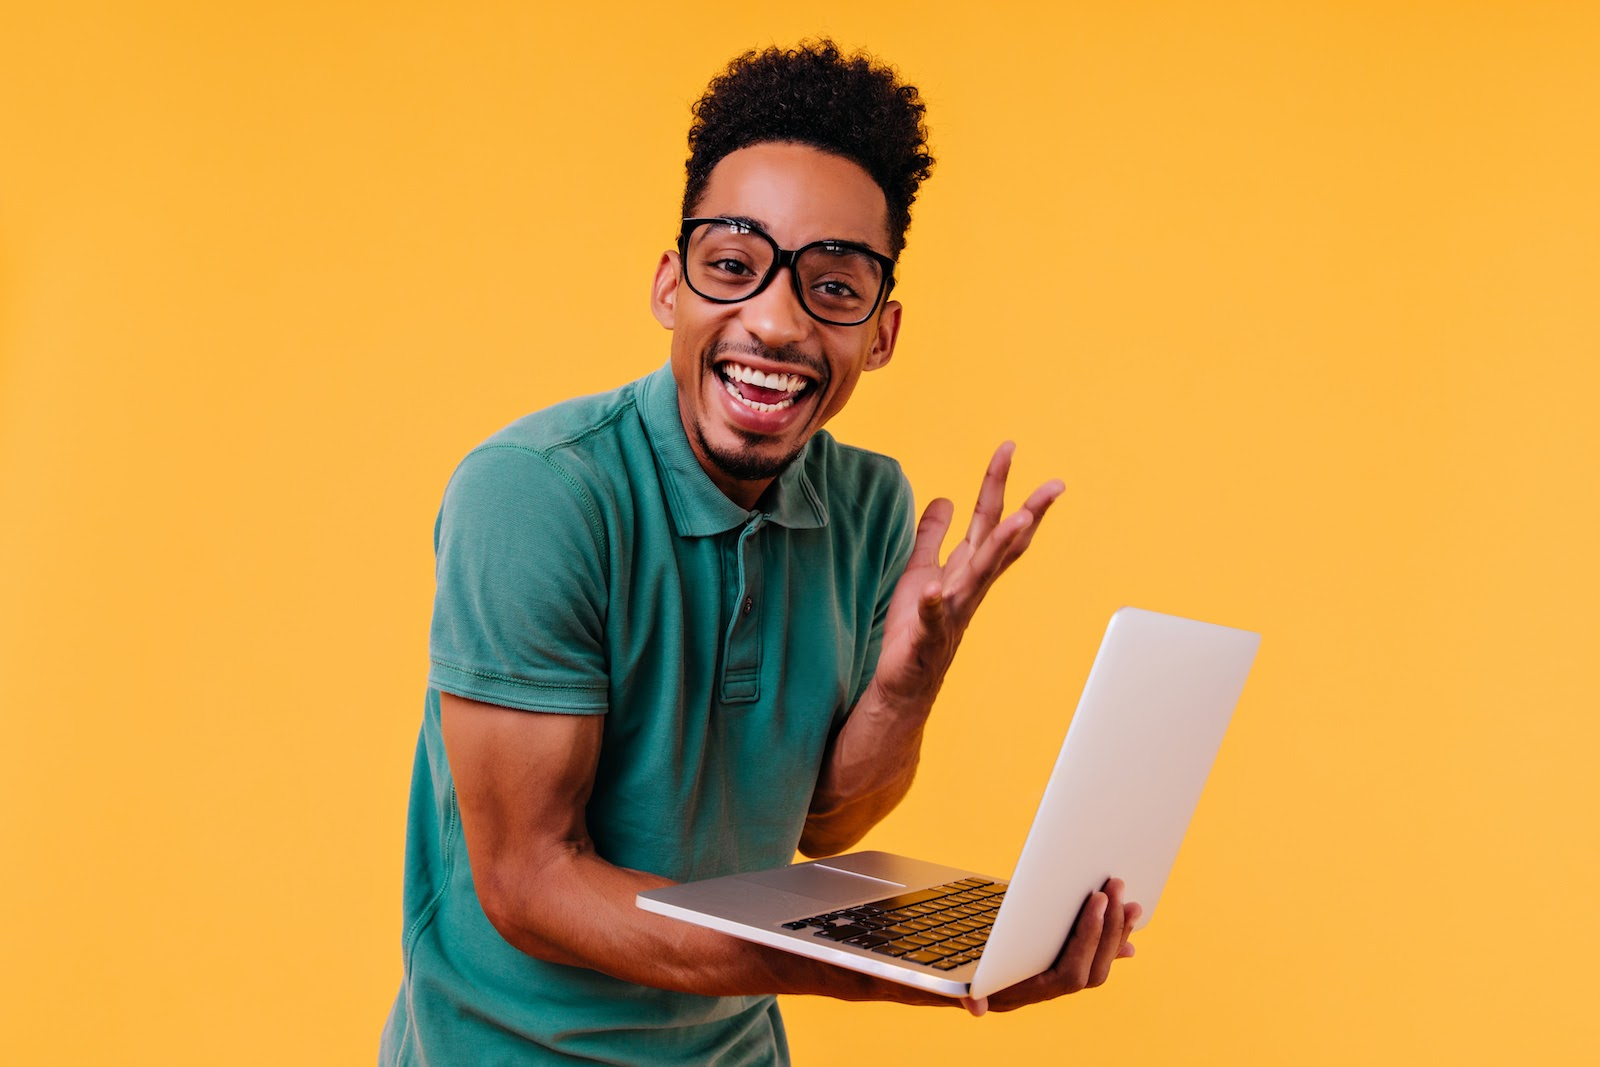 A man holds his laptop and looks excited